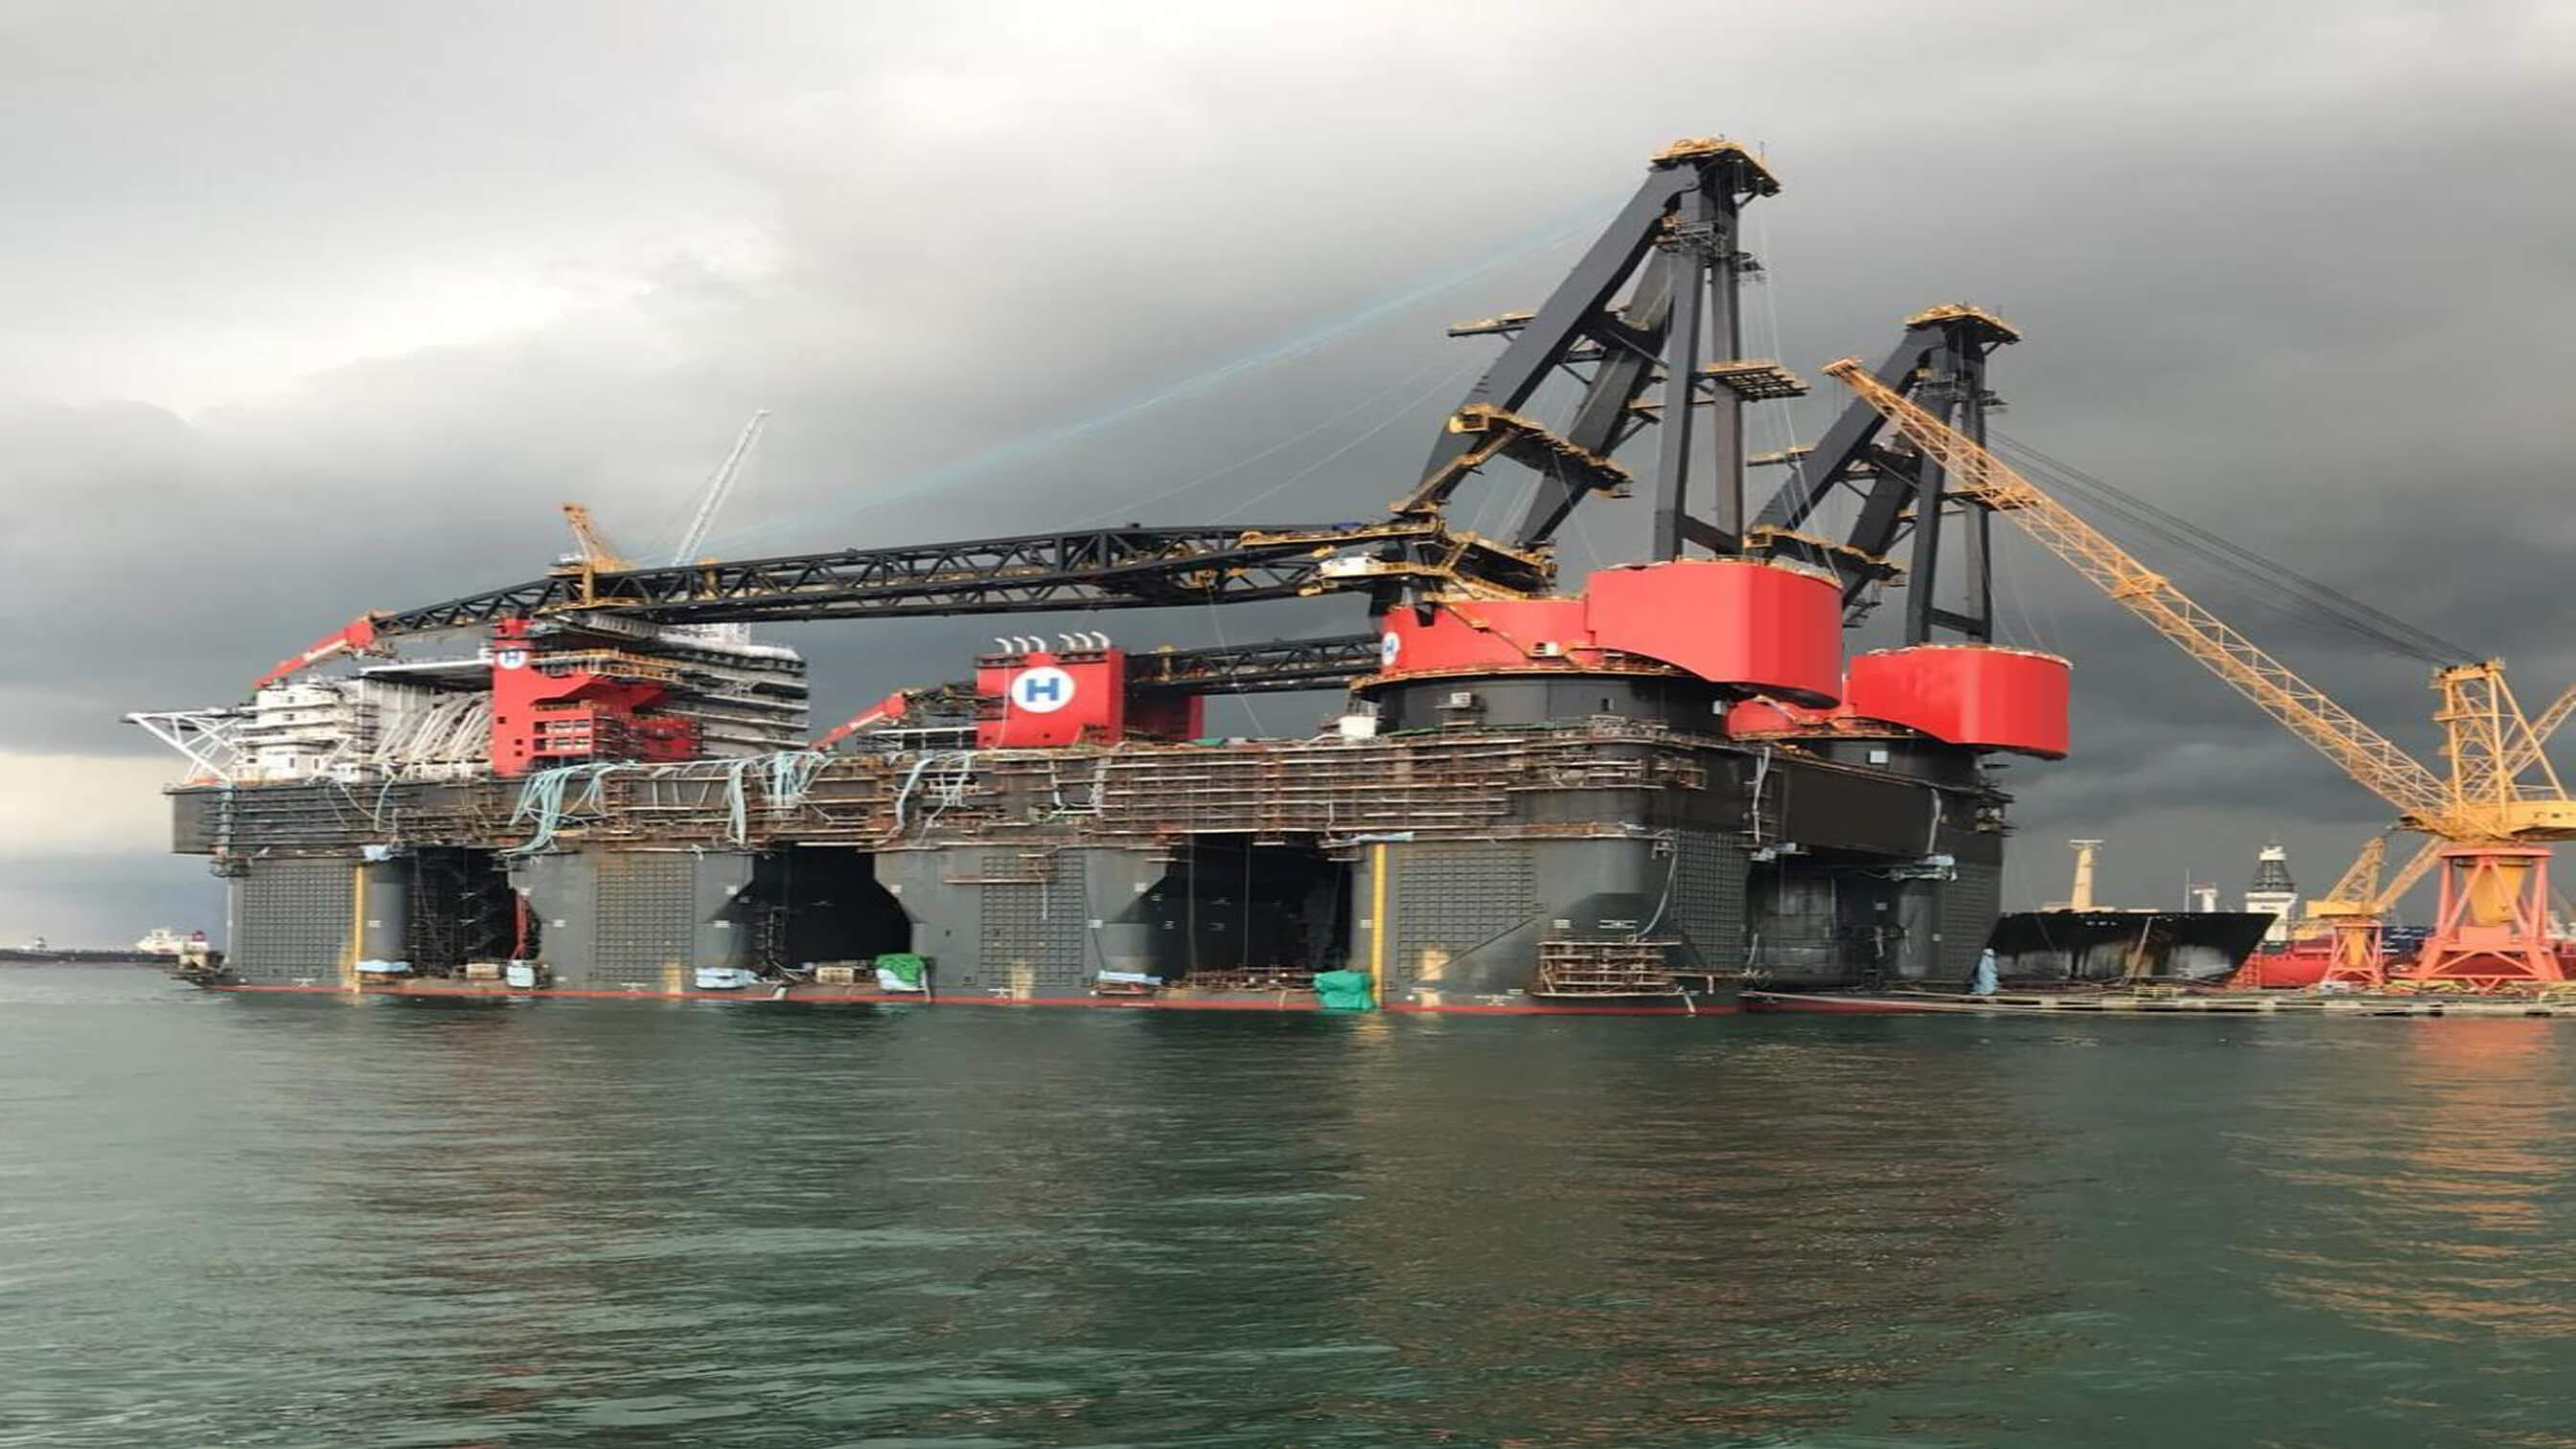 World's largest crane vessel